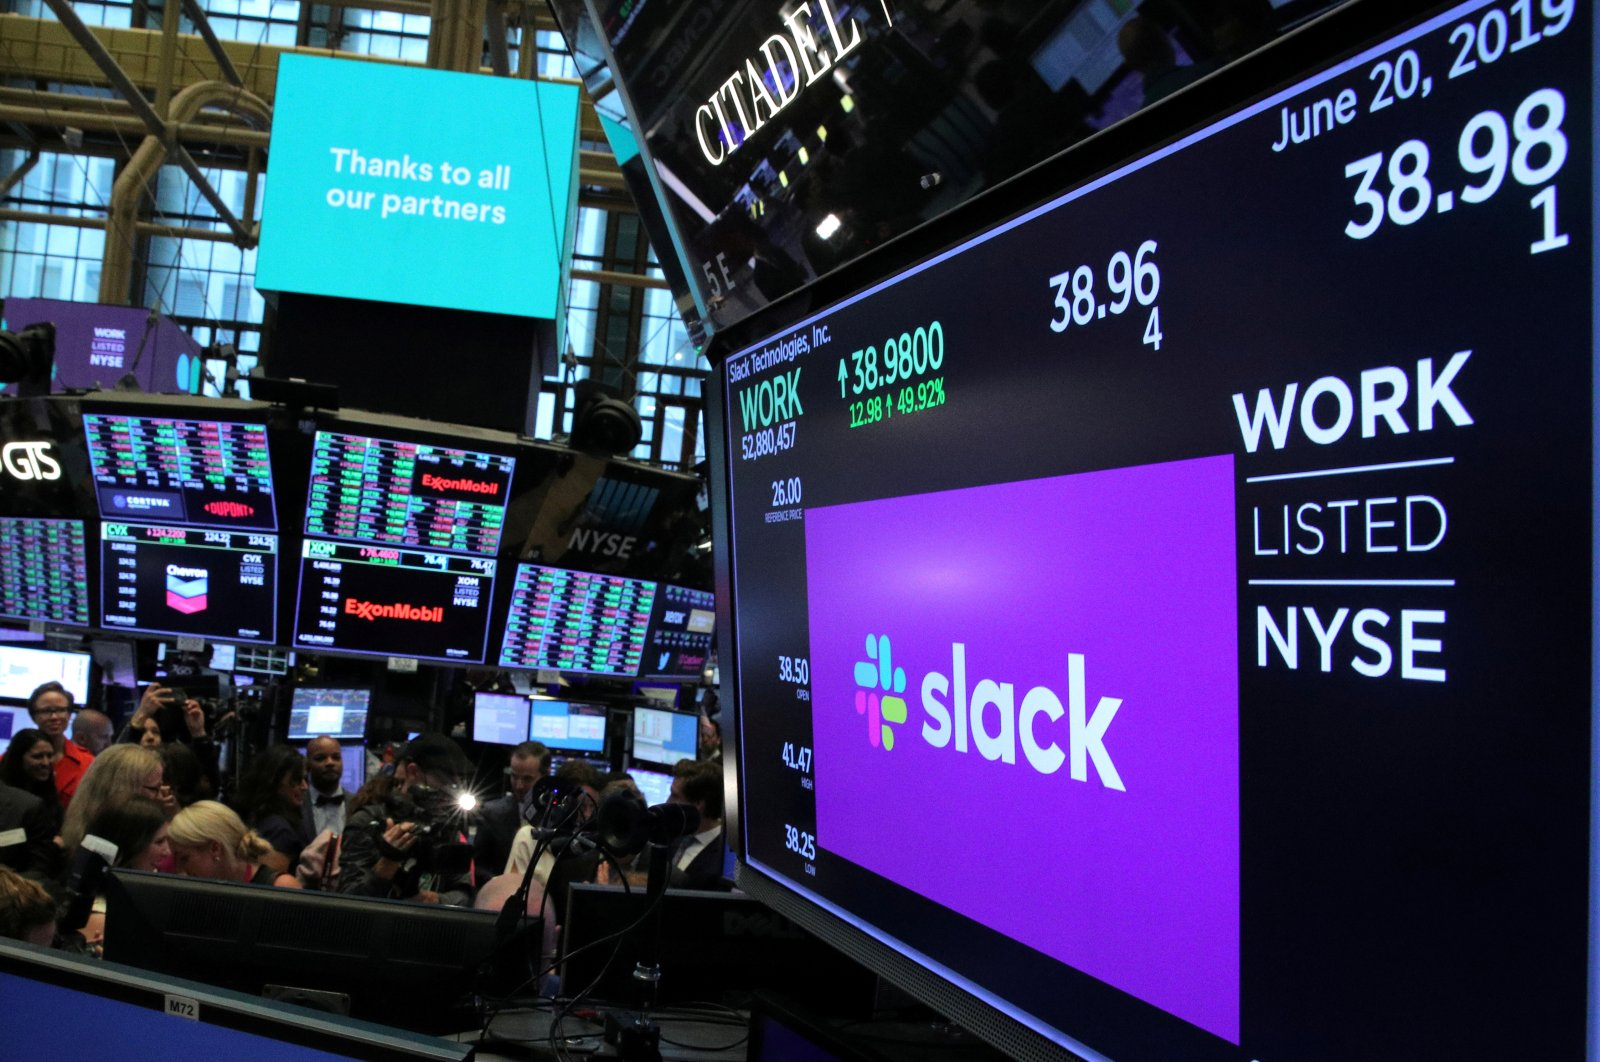 The stock price of Slack Technologies Inc. trading under the symbol (WORK) is seen on a display above the floor of the New York Stock Exchange (NYSE) during the company's direct listing in New York, U.S. on June 20, 2019. (Reuters Photo)